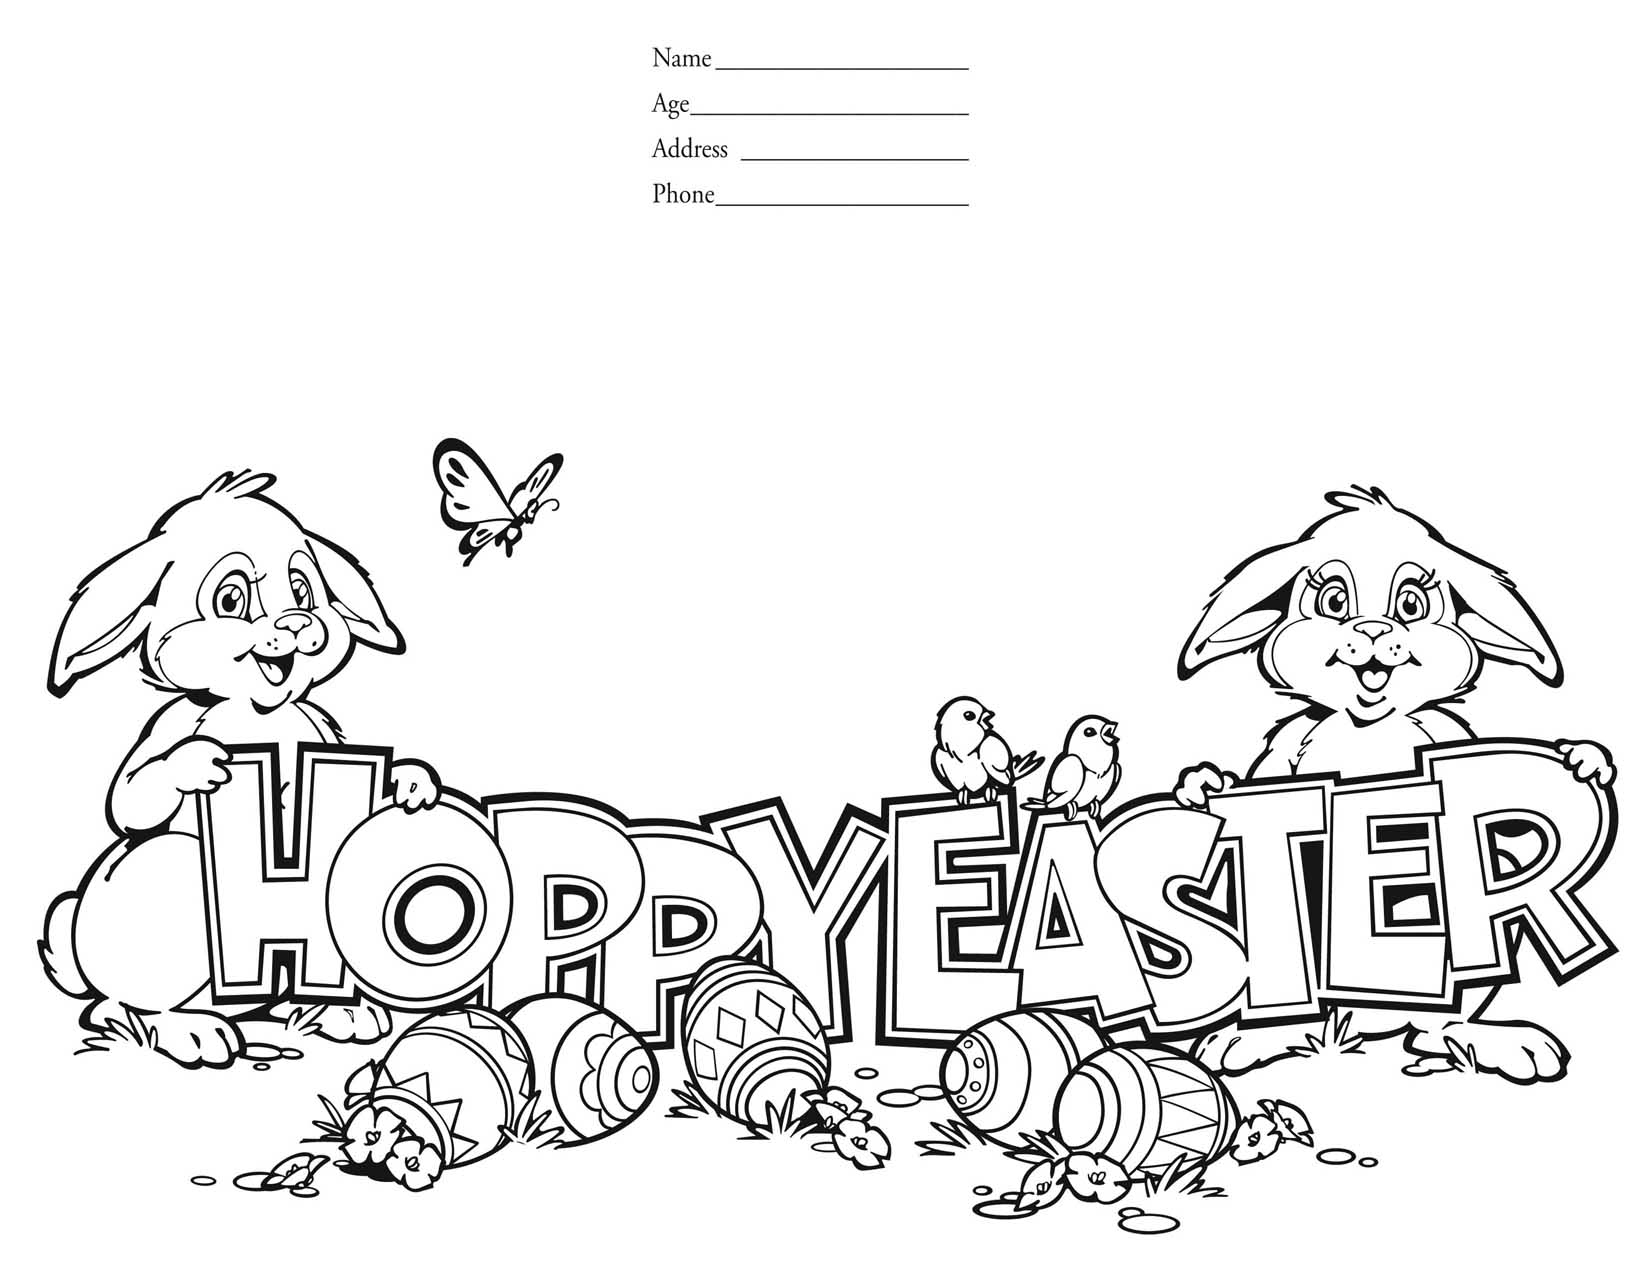 1650x1275 Best Of Activity Village Coloring Pages Bloodbrothers Free